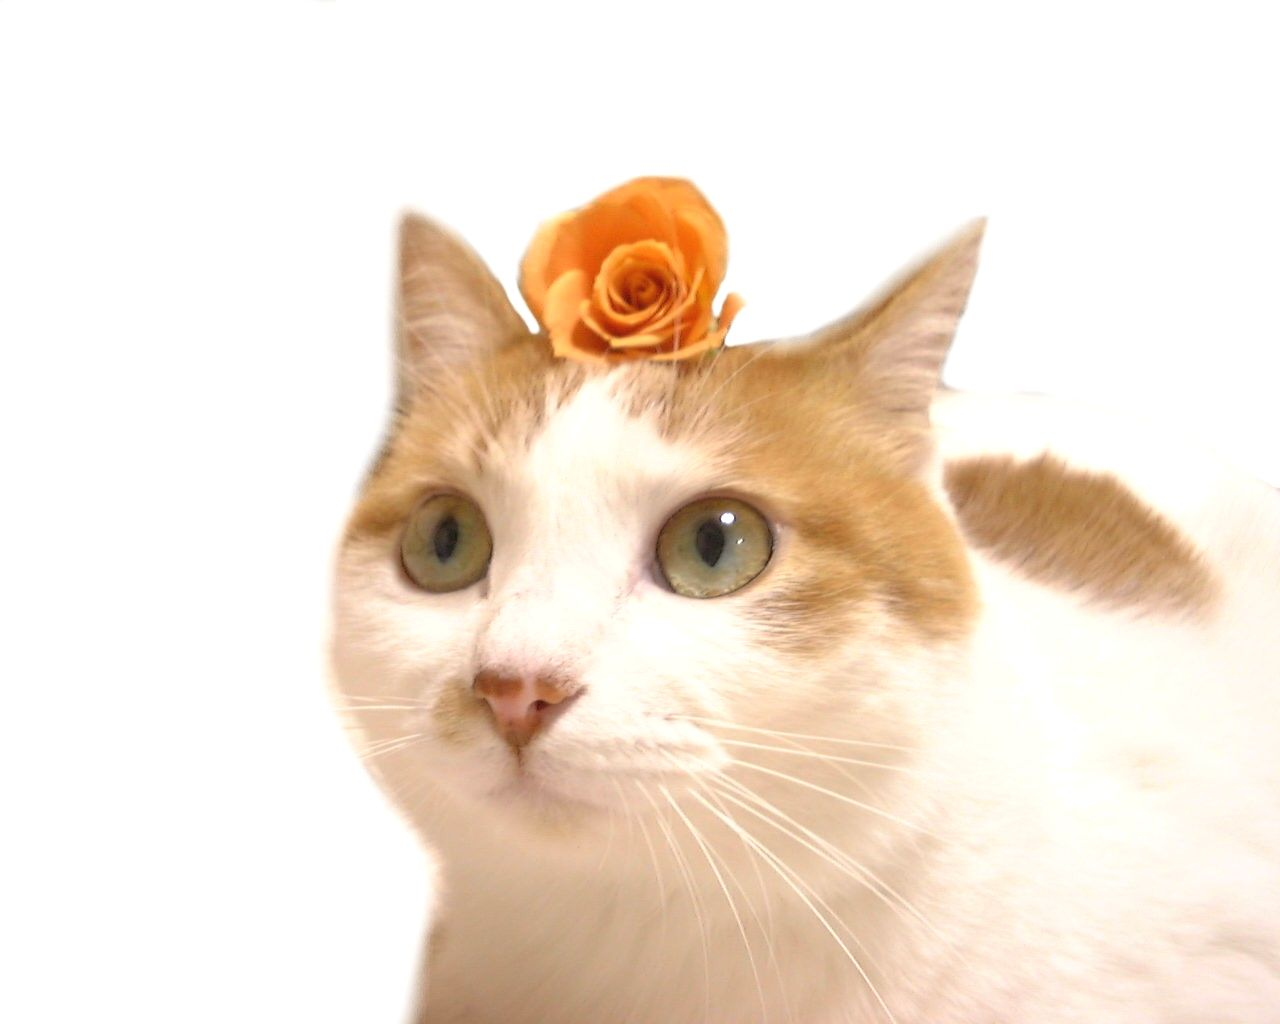 Send flowers that are safe for pets